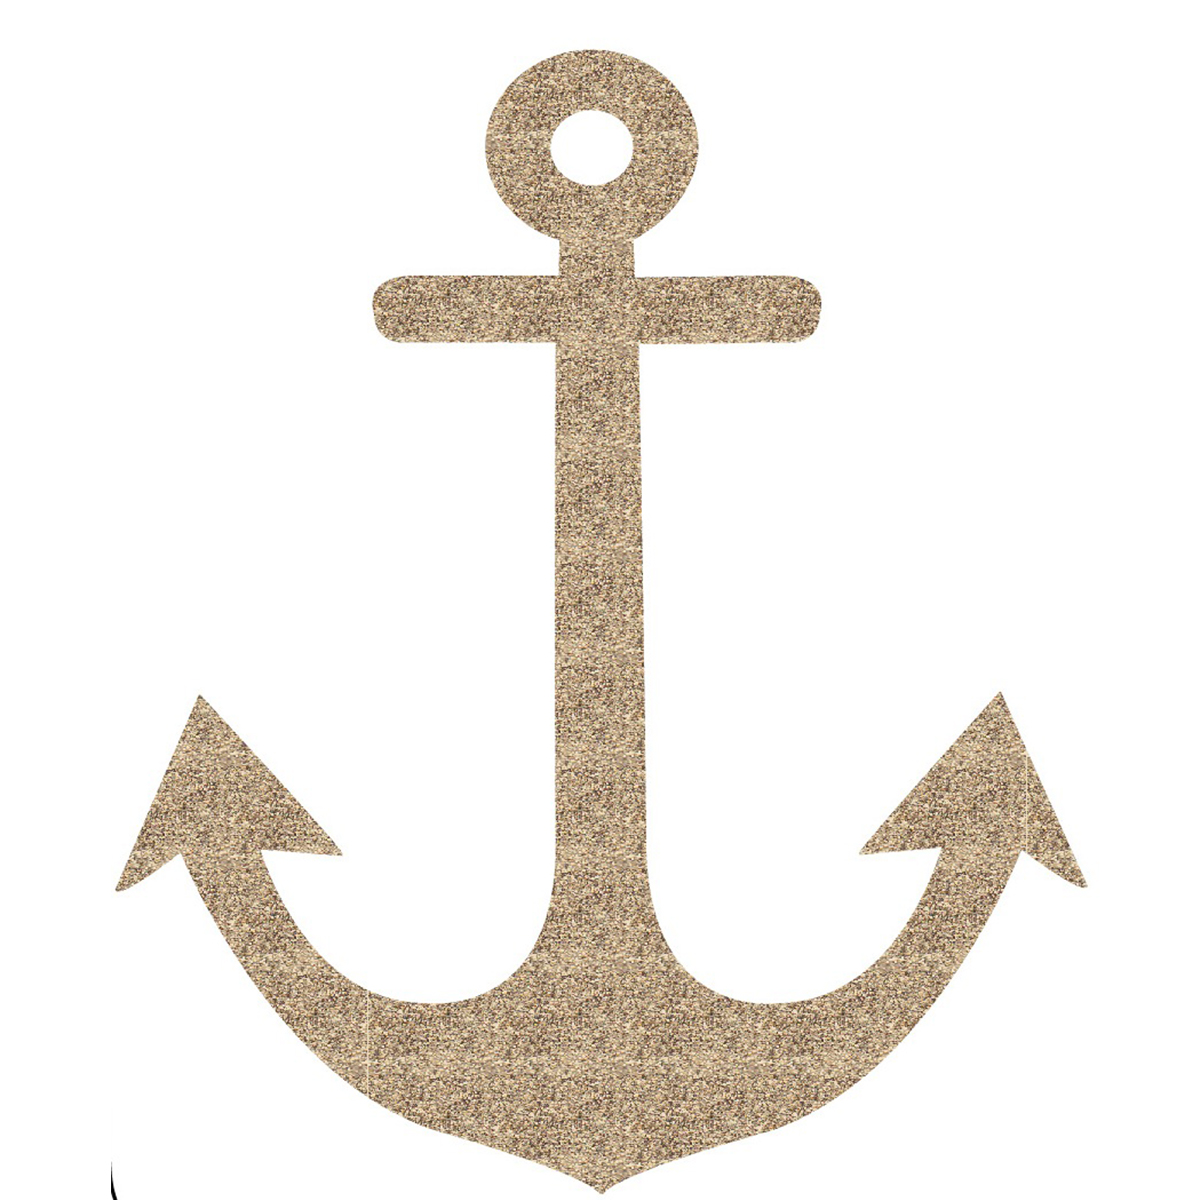 Free Anchors, Download Free Clip Art, Free Clip Art on.